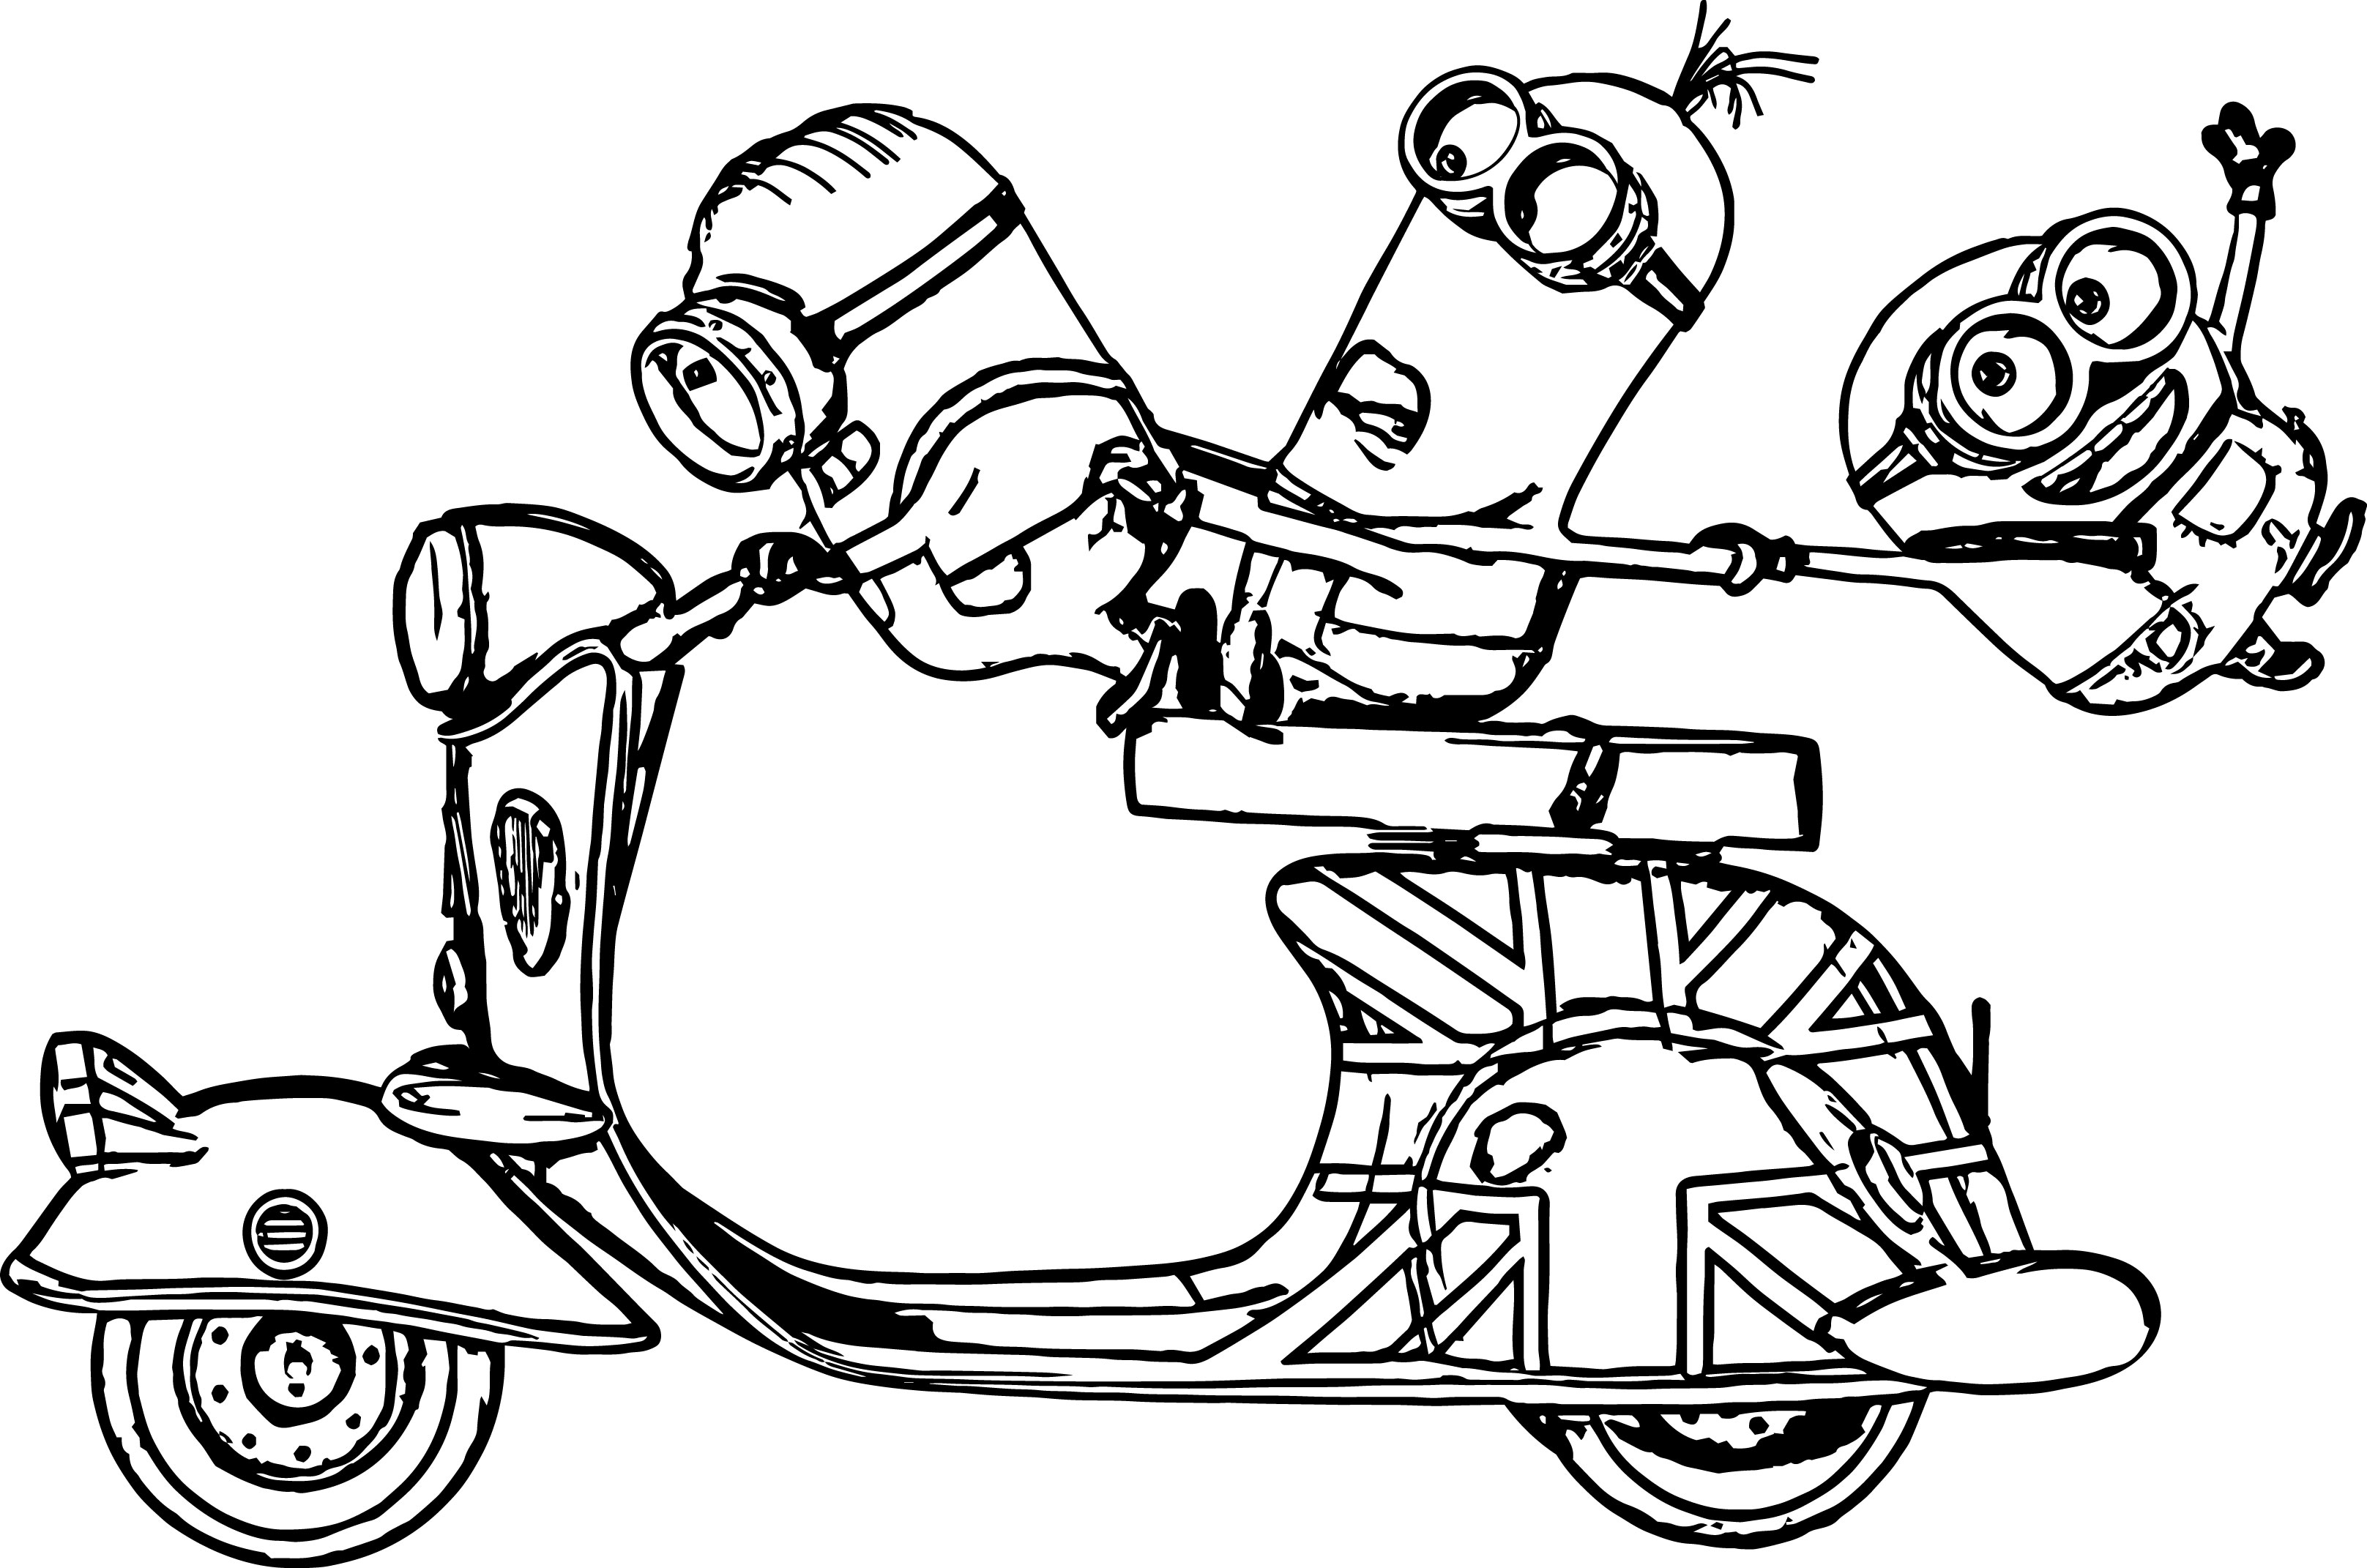 minions scooter bob kevin stuart despicable me coloring page - Minion Coloring Pages